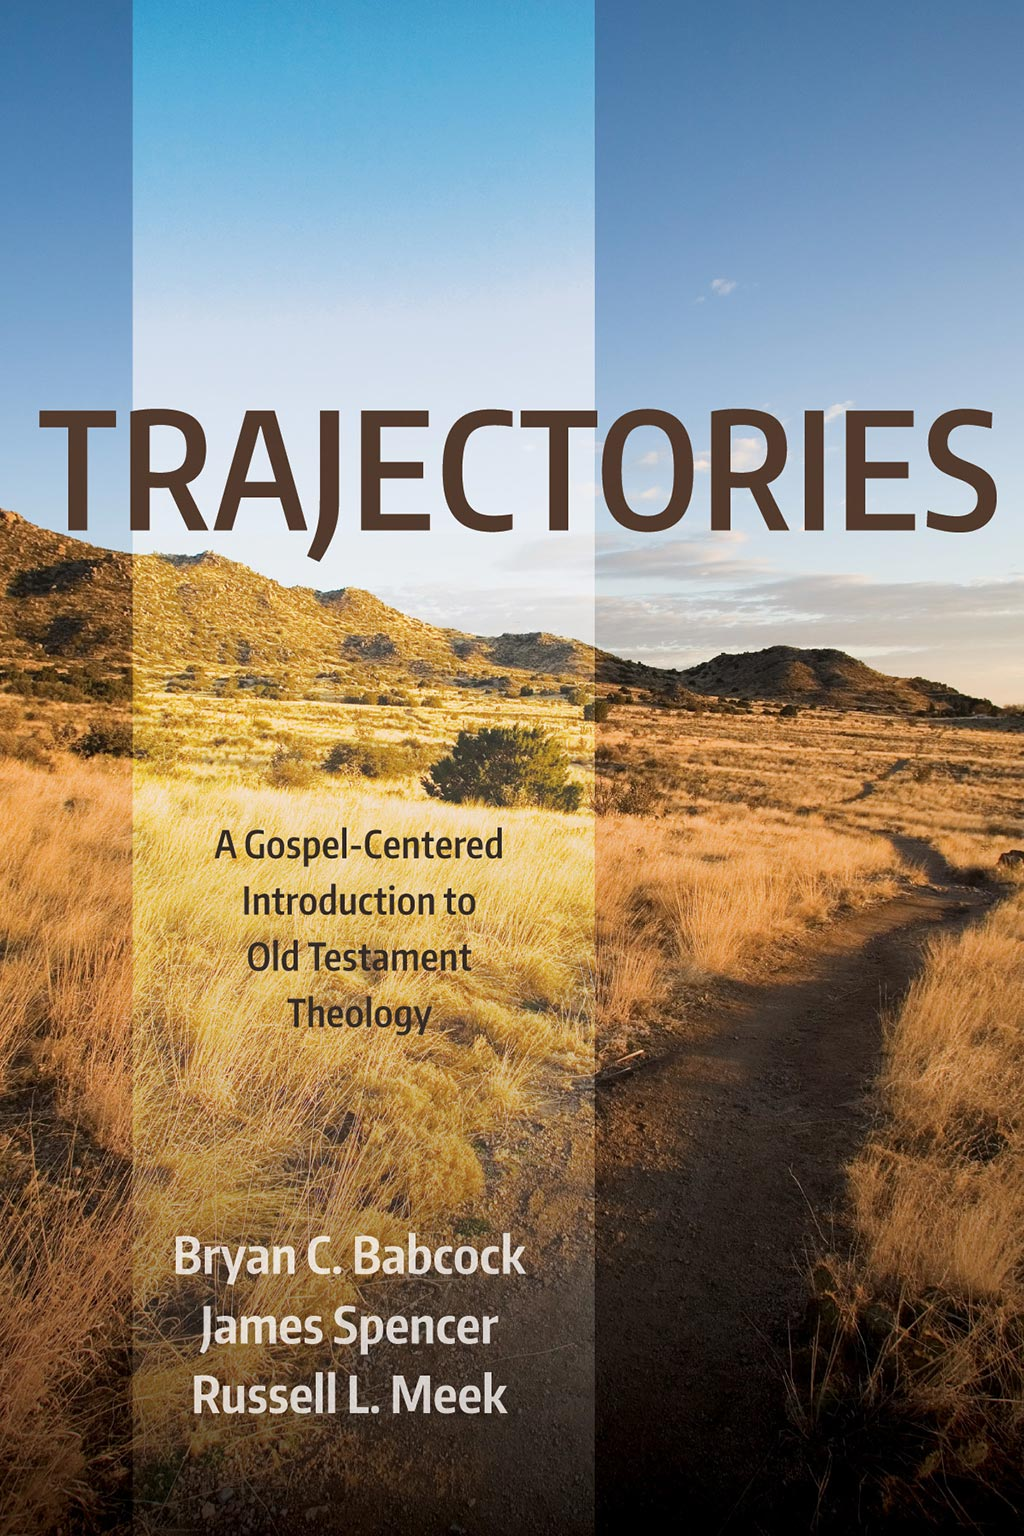 Book cover of Trajectories: A Gospel-Centered Introduction to Old Testament Theology